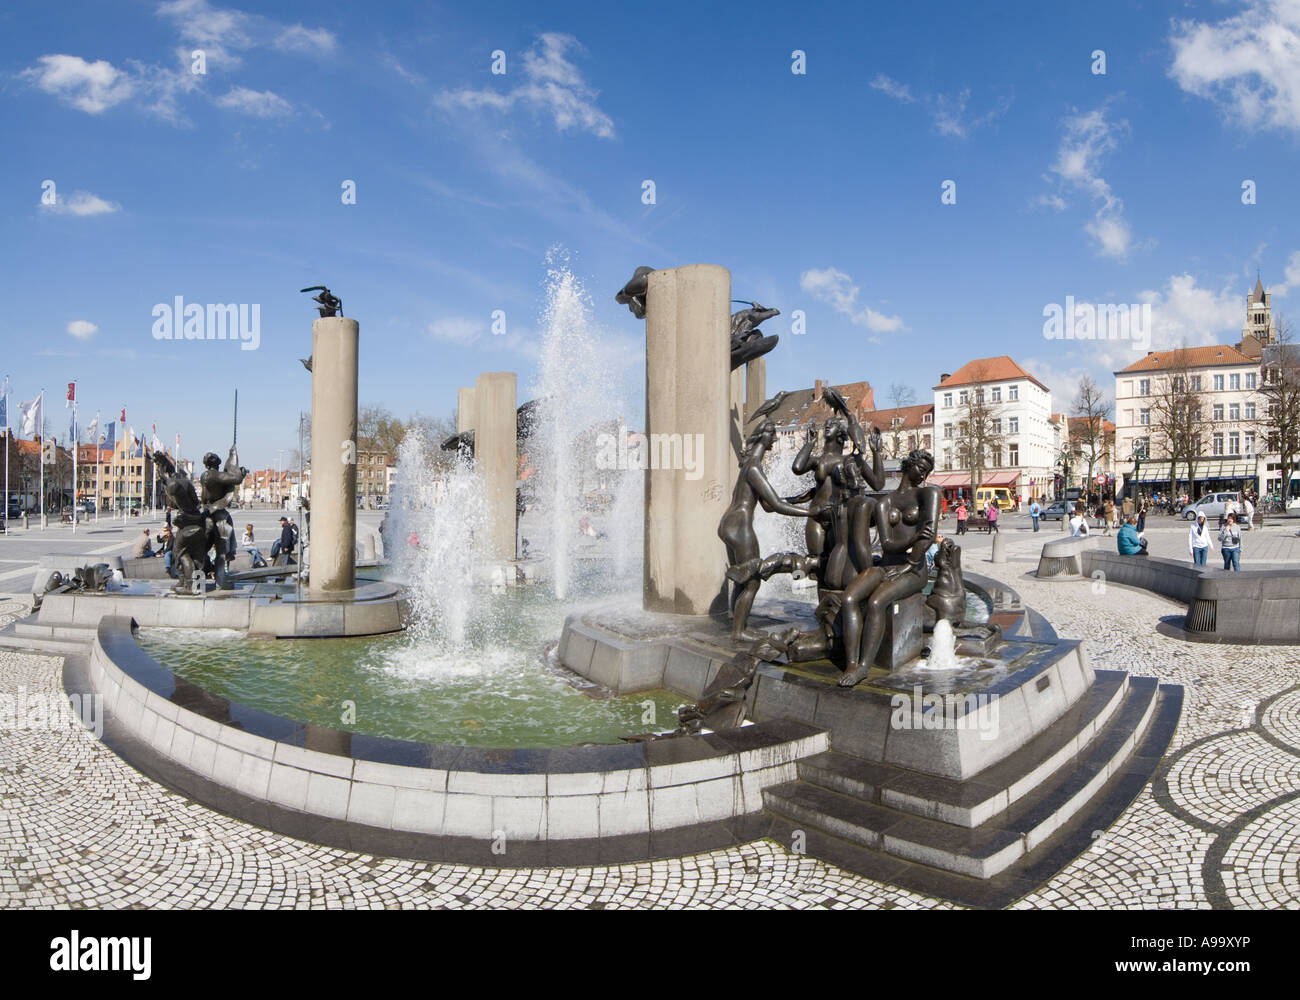 A 2 picture stitch panoramic of the modern sculptures and fountains that occupy T' Zand square in Bruges (Brugge), - Stock Image